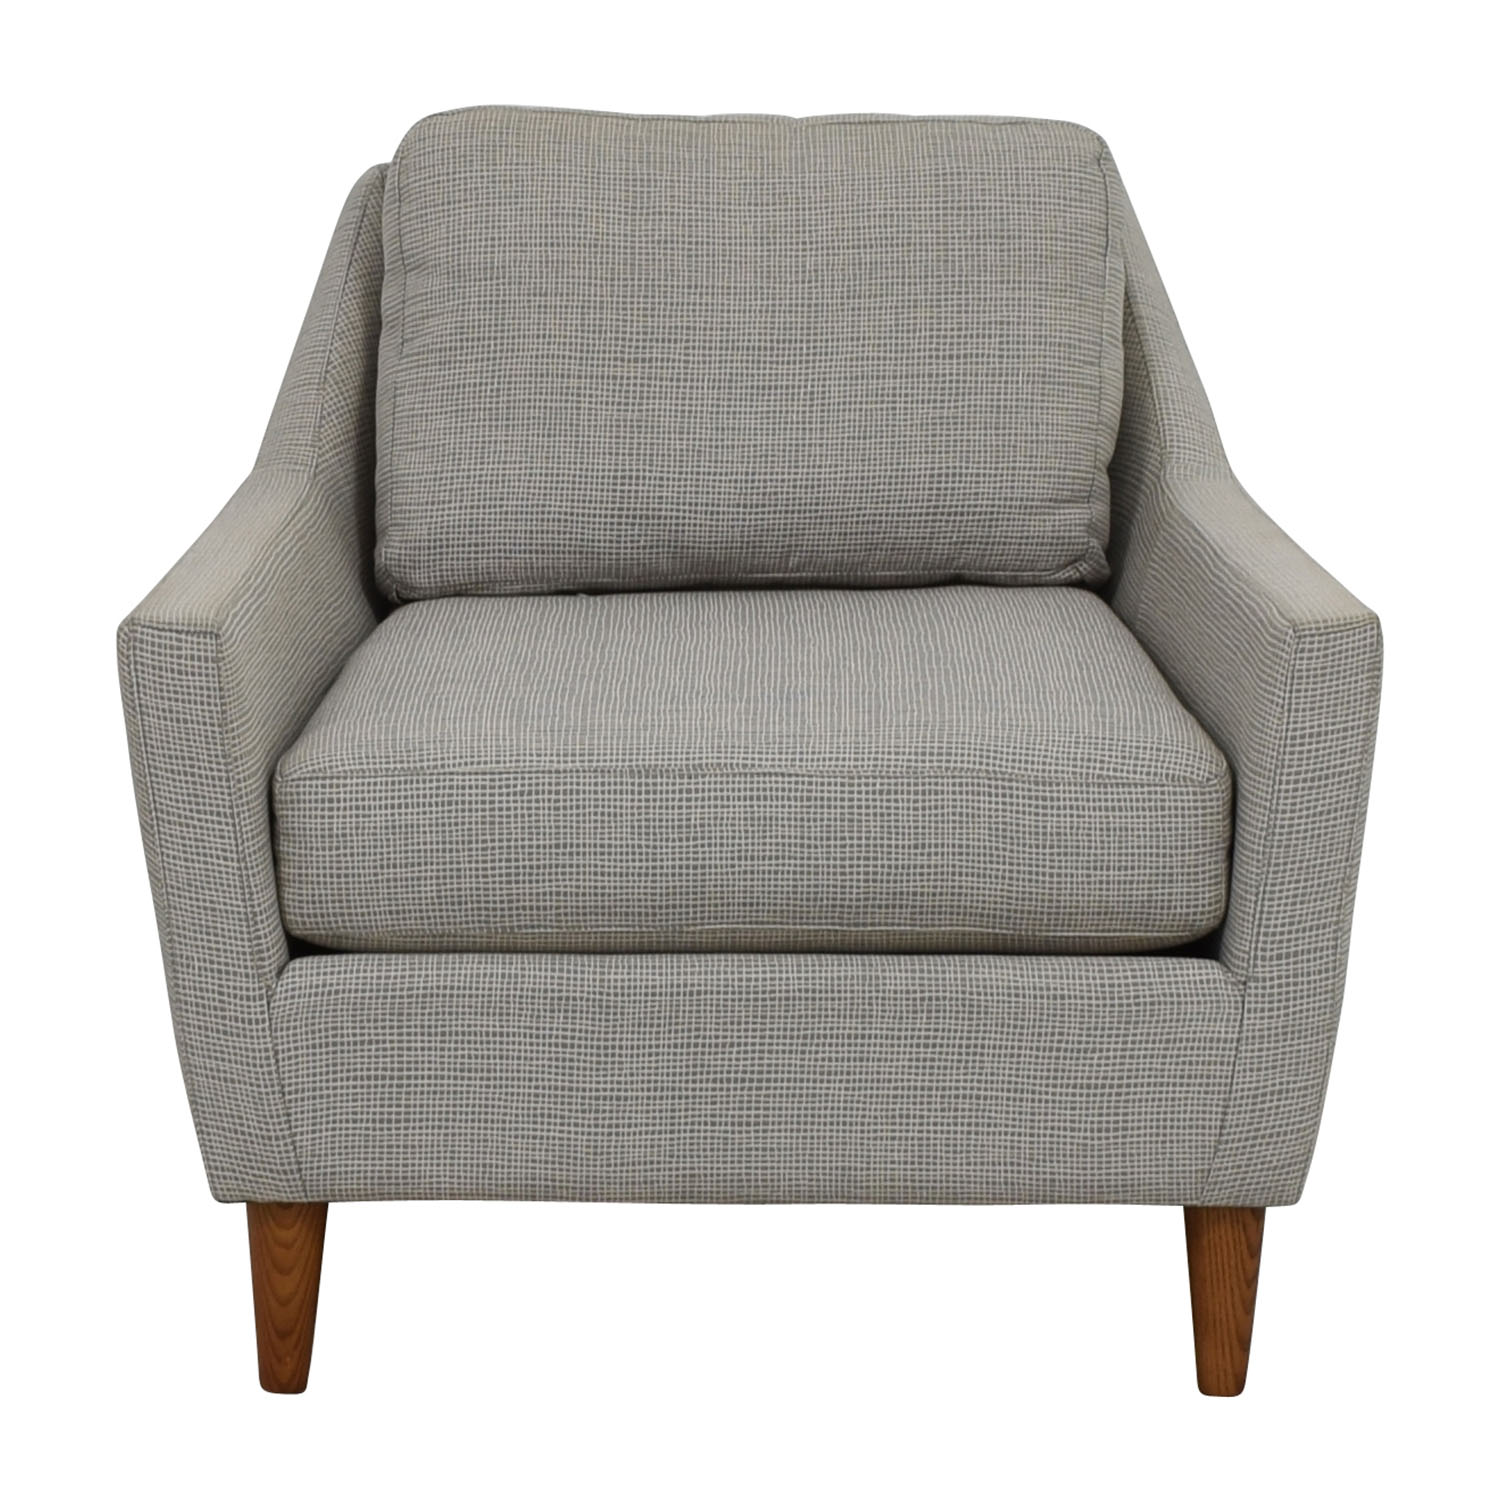 West Elm Chairs: West Elm West Elm Grey Everett Sofa Chair / Chairs